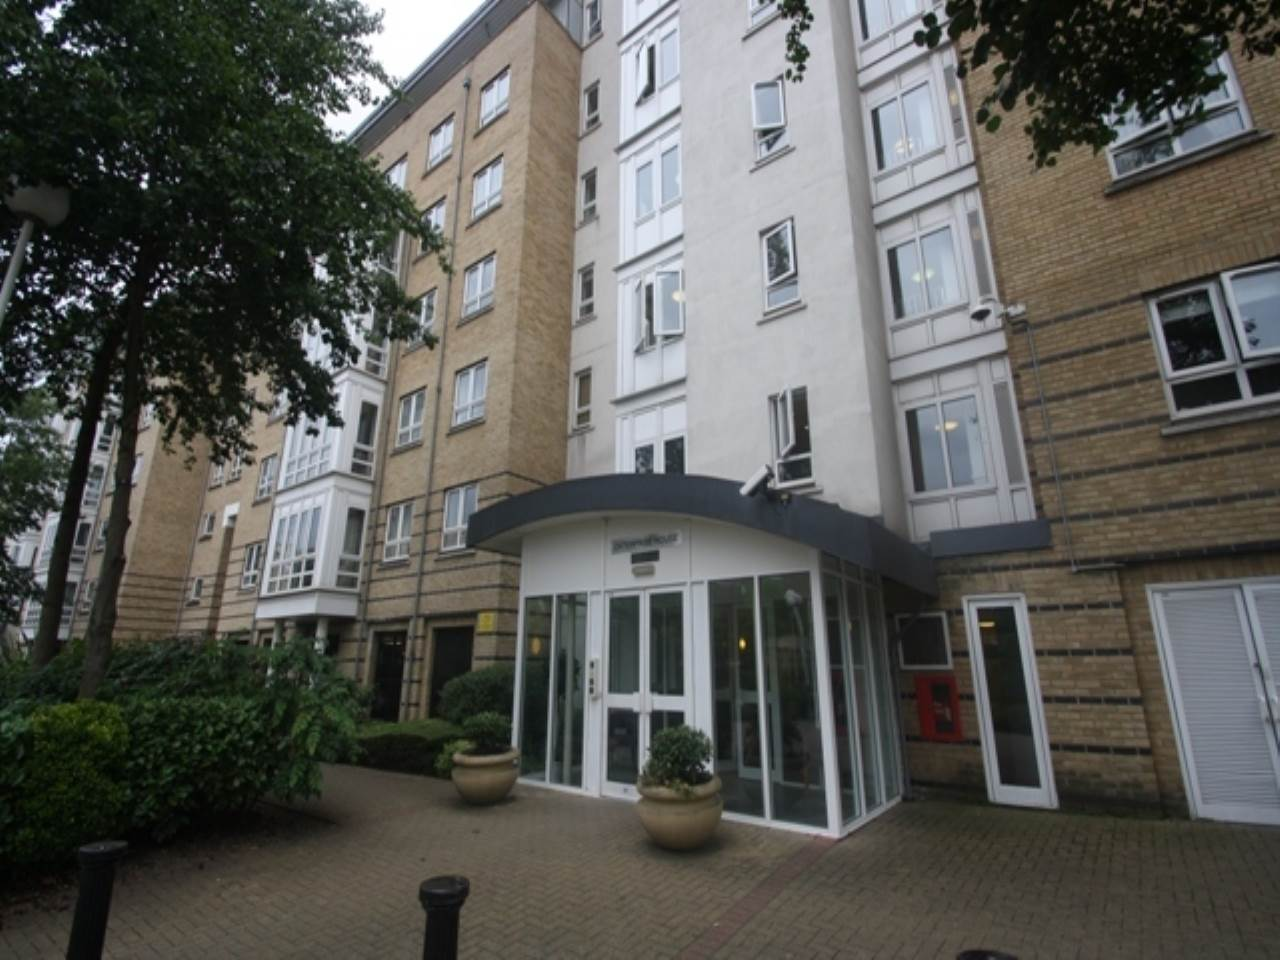 2 bed flat to rent, E14